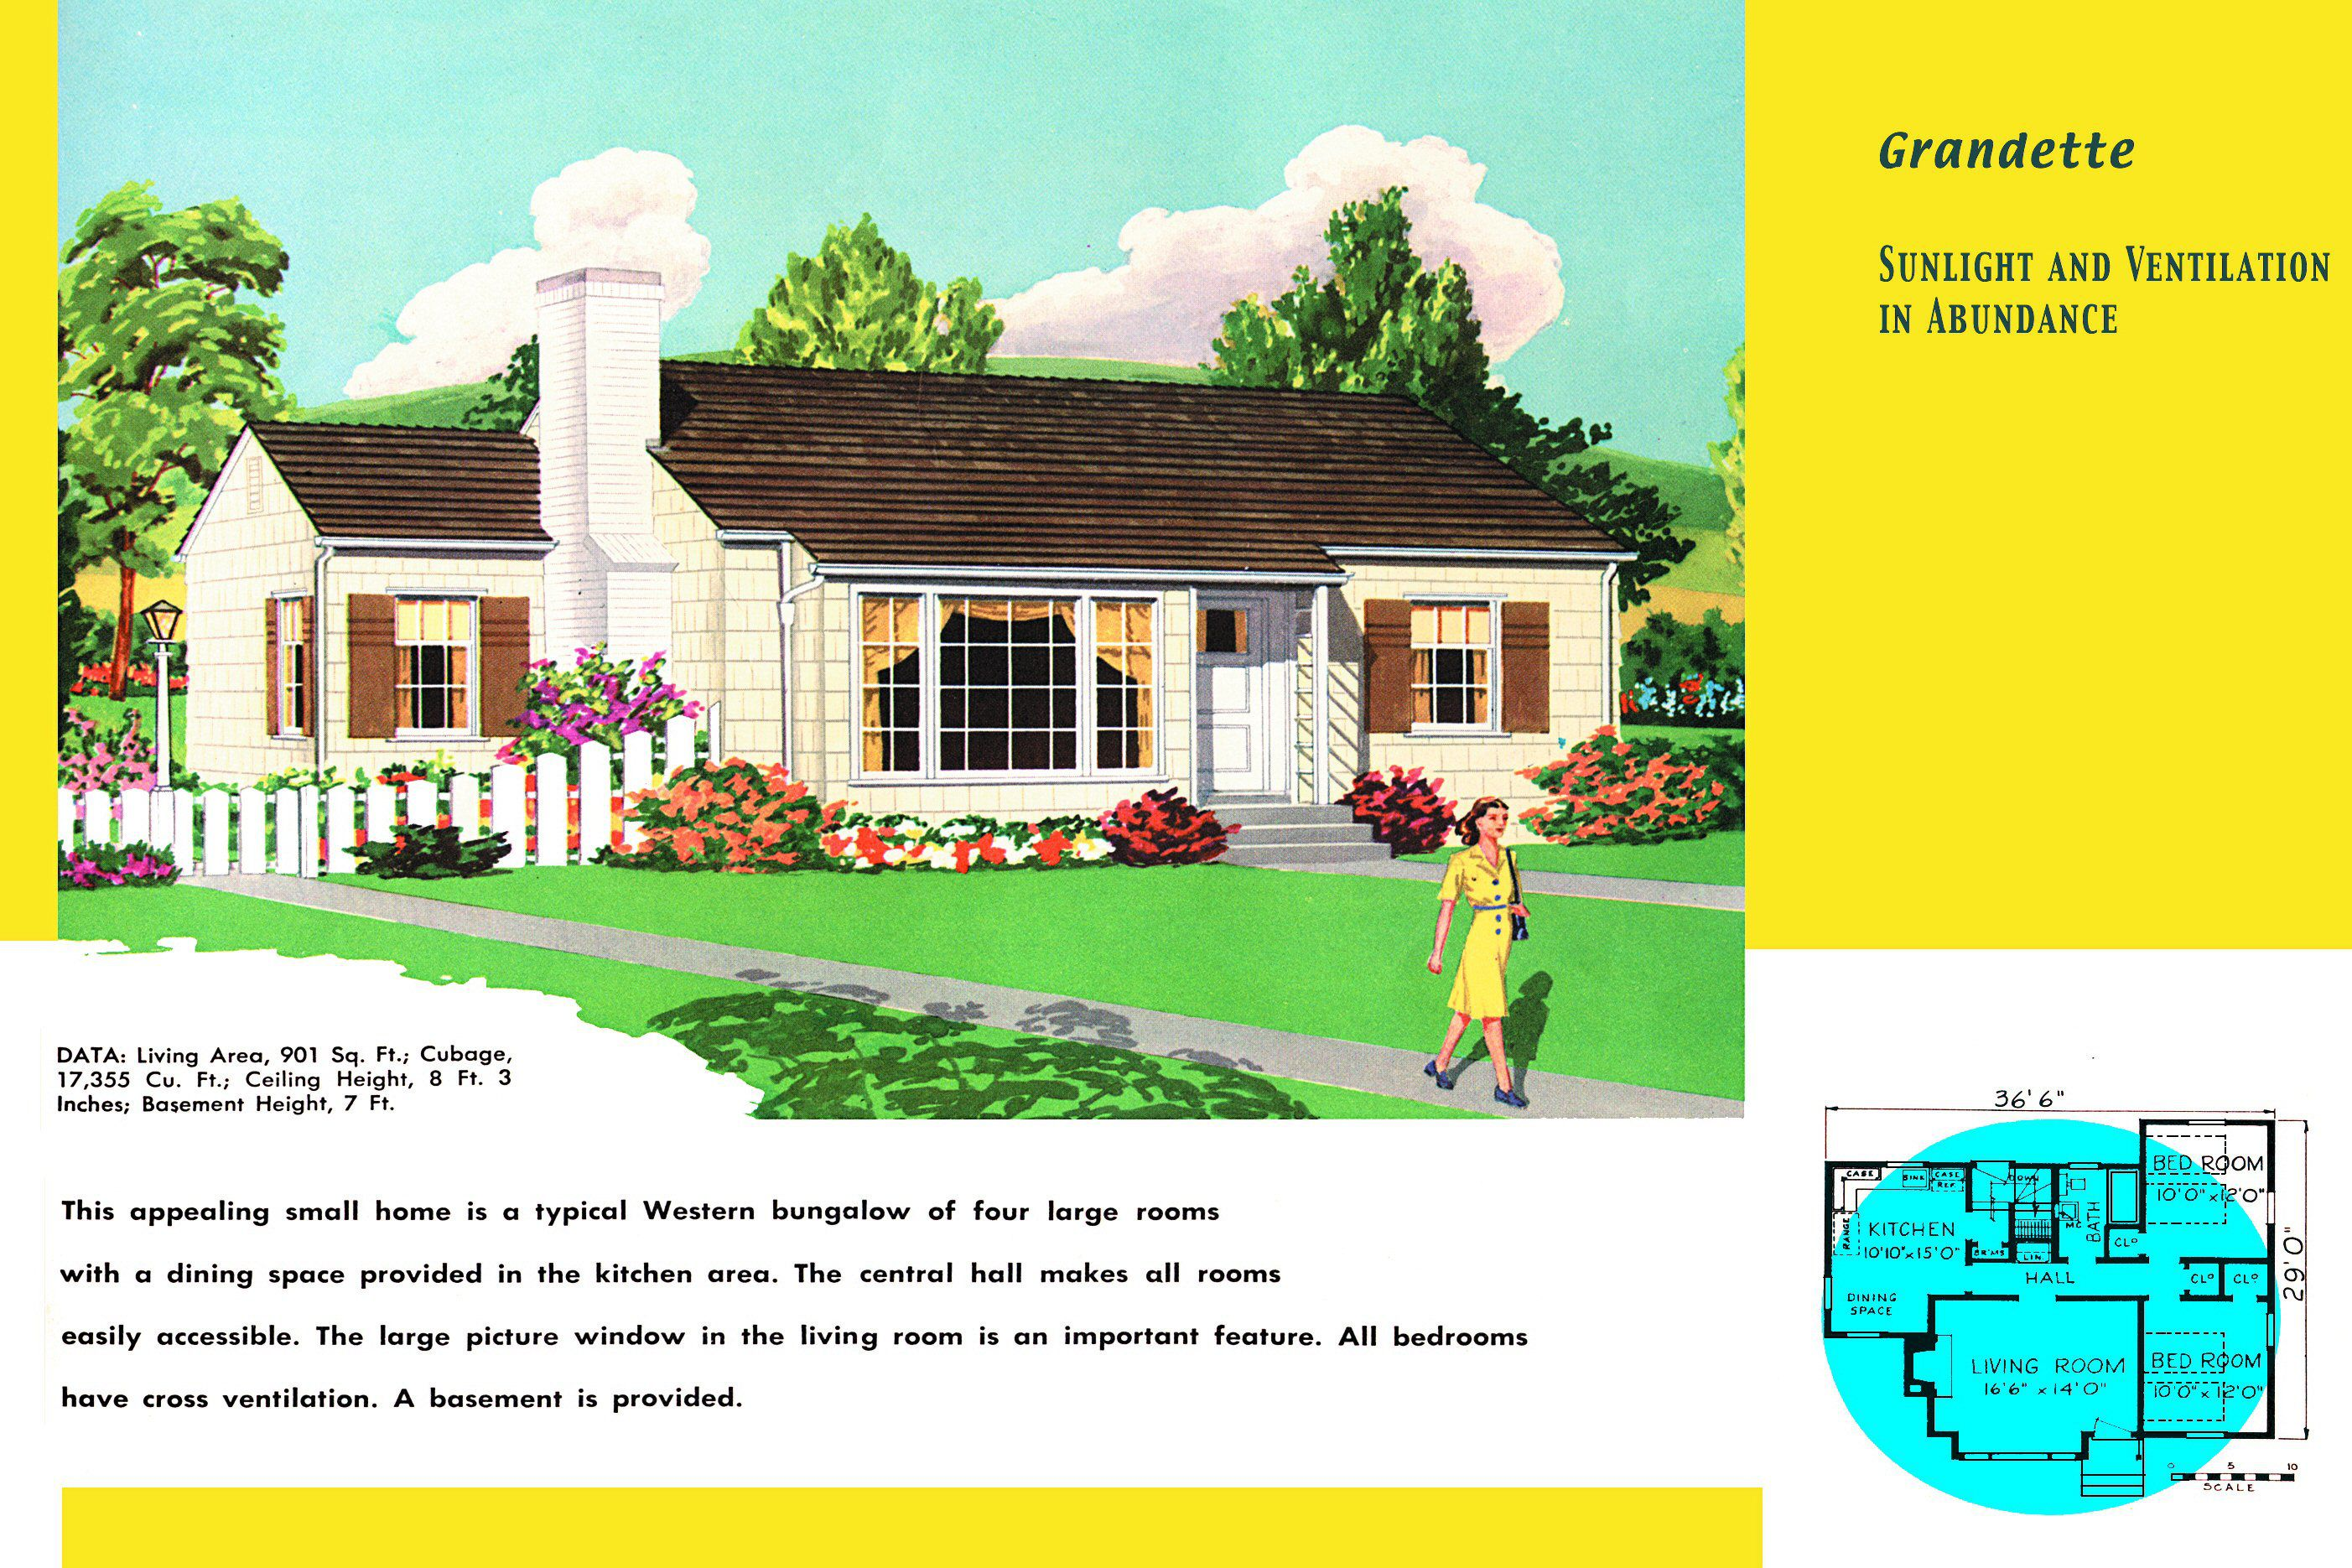 1950s House Plans for Por Ranch Homes on luxury ranch home plans, old west style home plans, western style home designs, rustic craftsman style home plans, house plans, rustic lodge style home plans, vintage style home plans, western style cabin plans, western house designs, rustic western homes plans, craftsman bungalow style home plans,